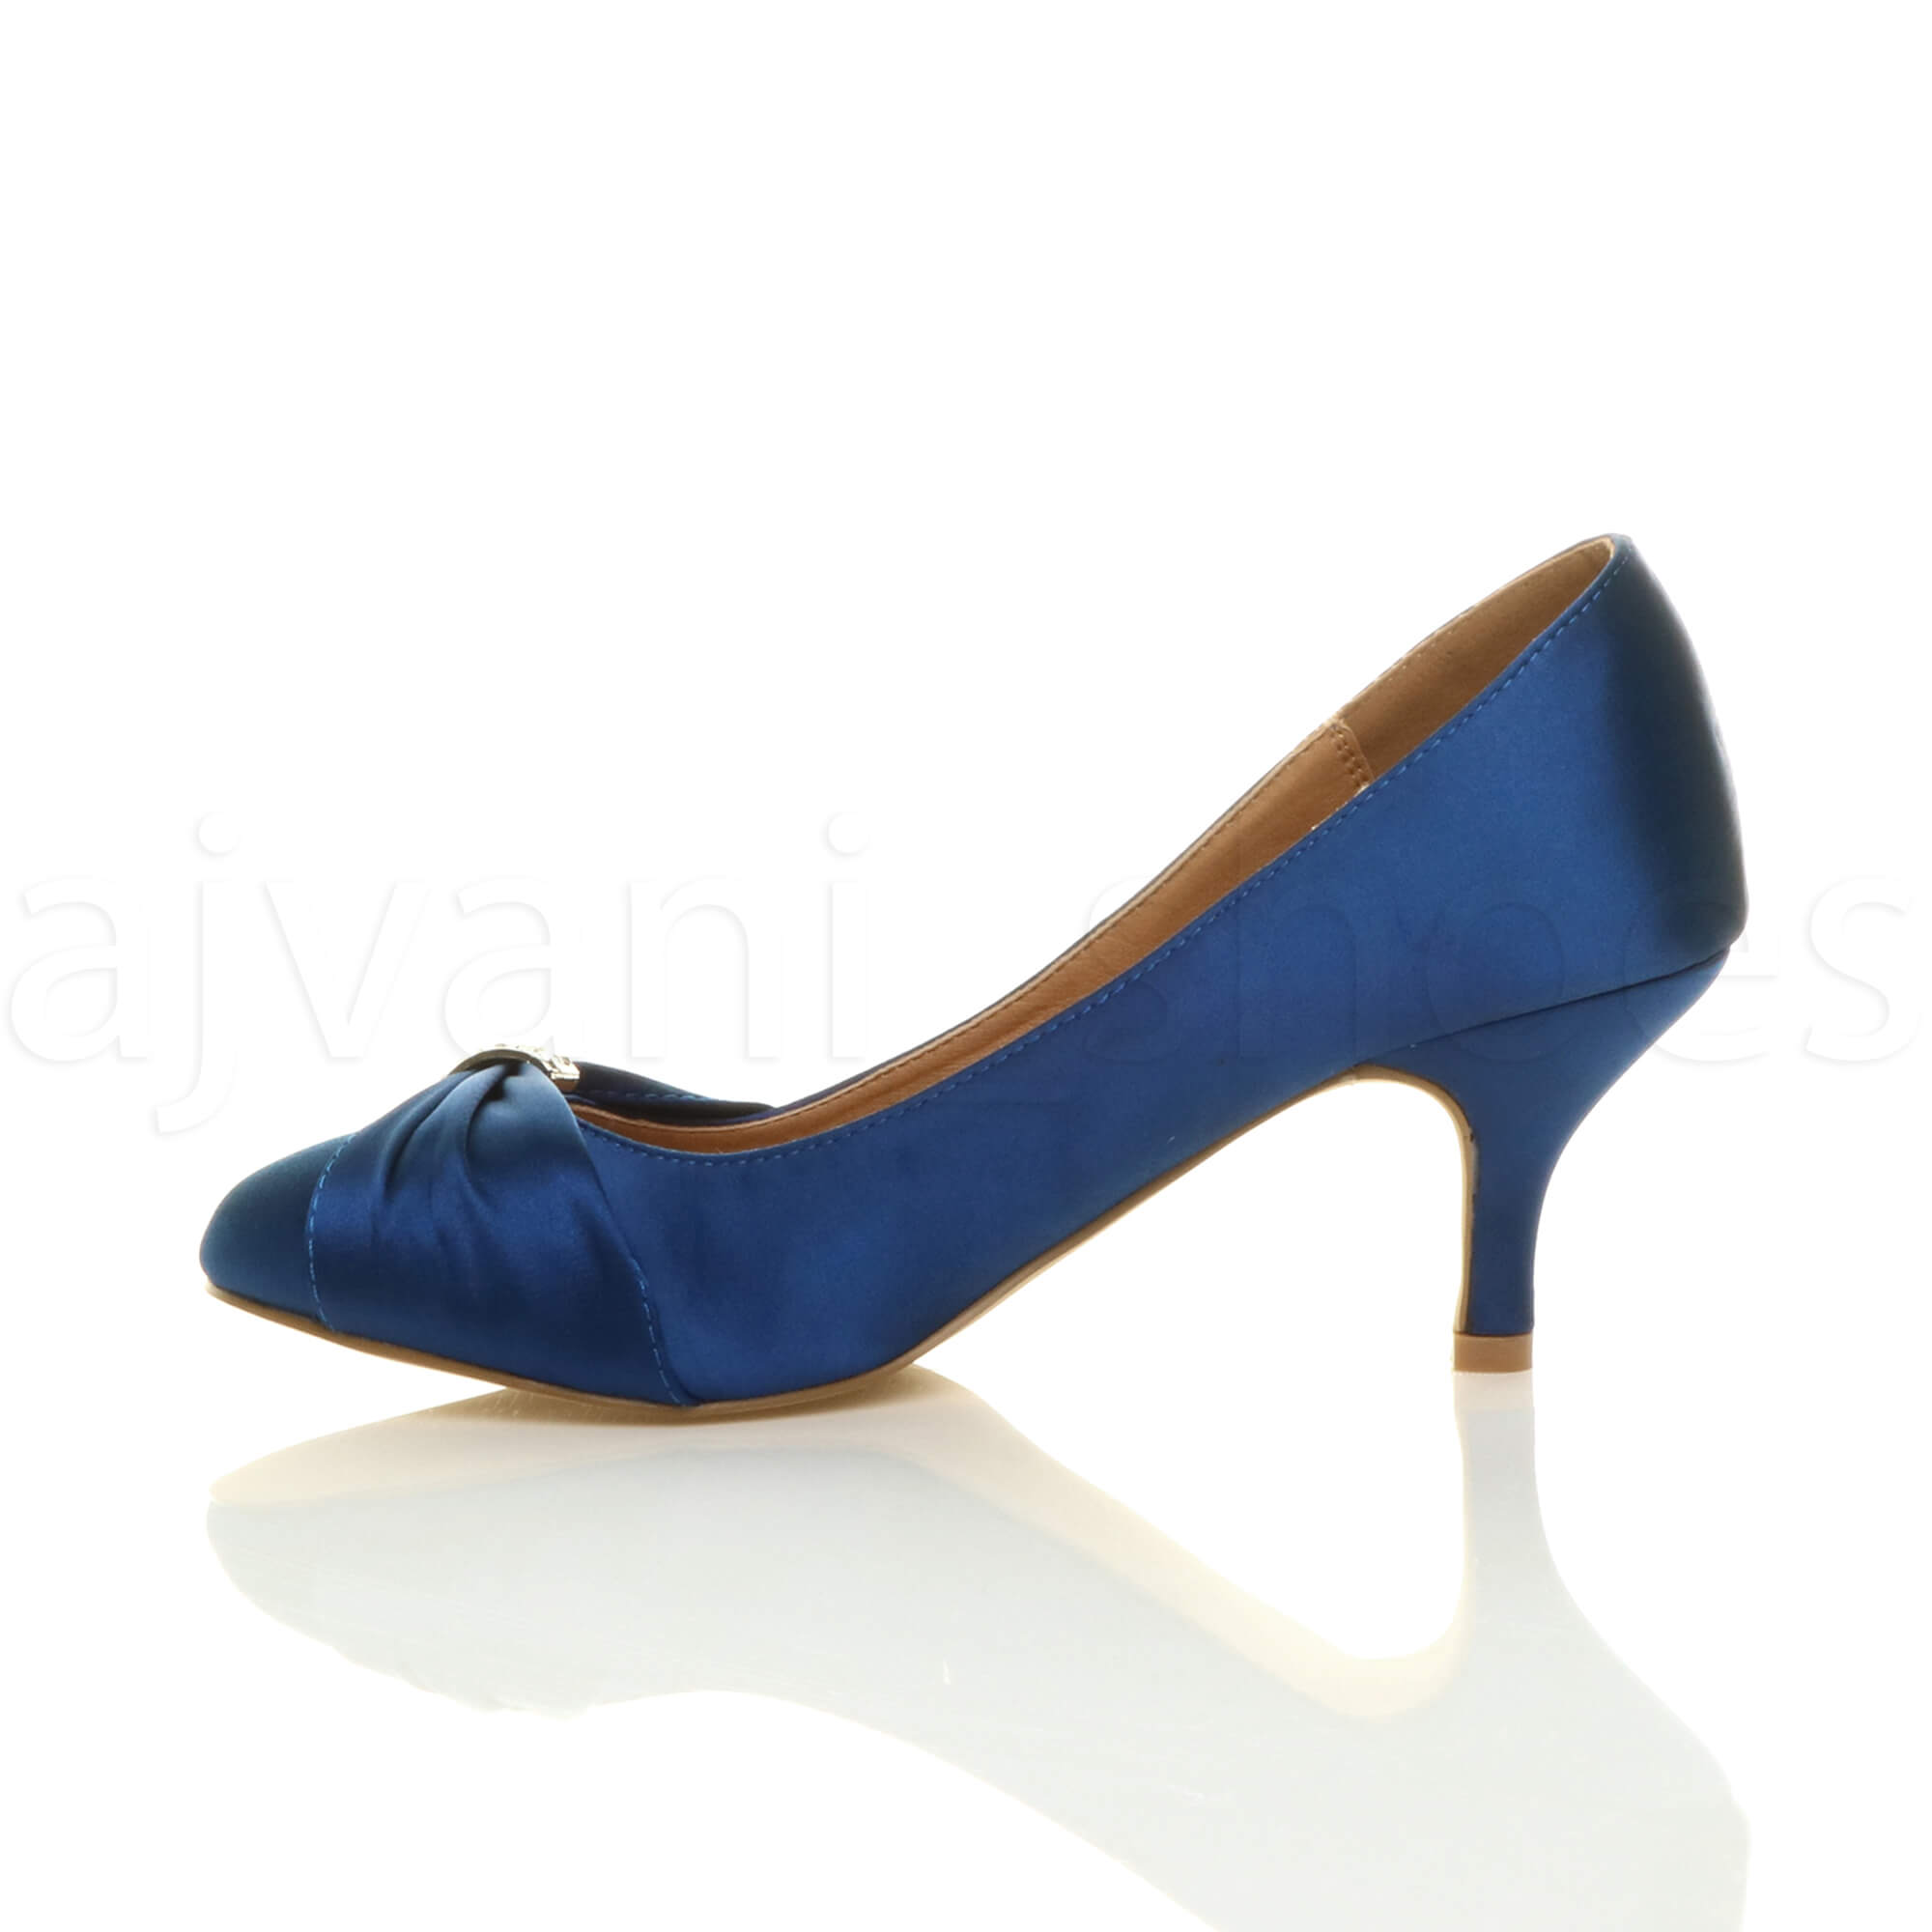 WOMENS-LADIES-MID-HEEL-RUCHED-DIAMANTE-WEDDING-PROM-EVENING-COURT-SHOES-SIZE thumbnail 52